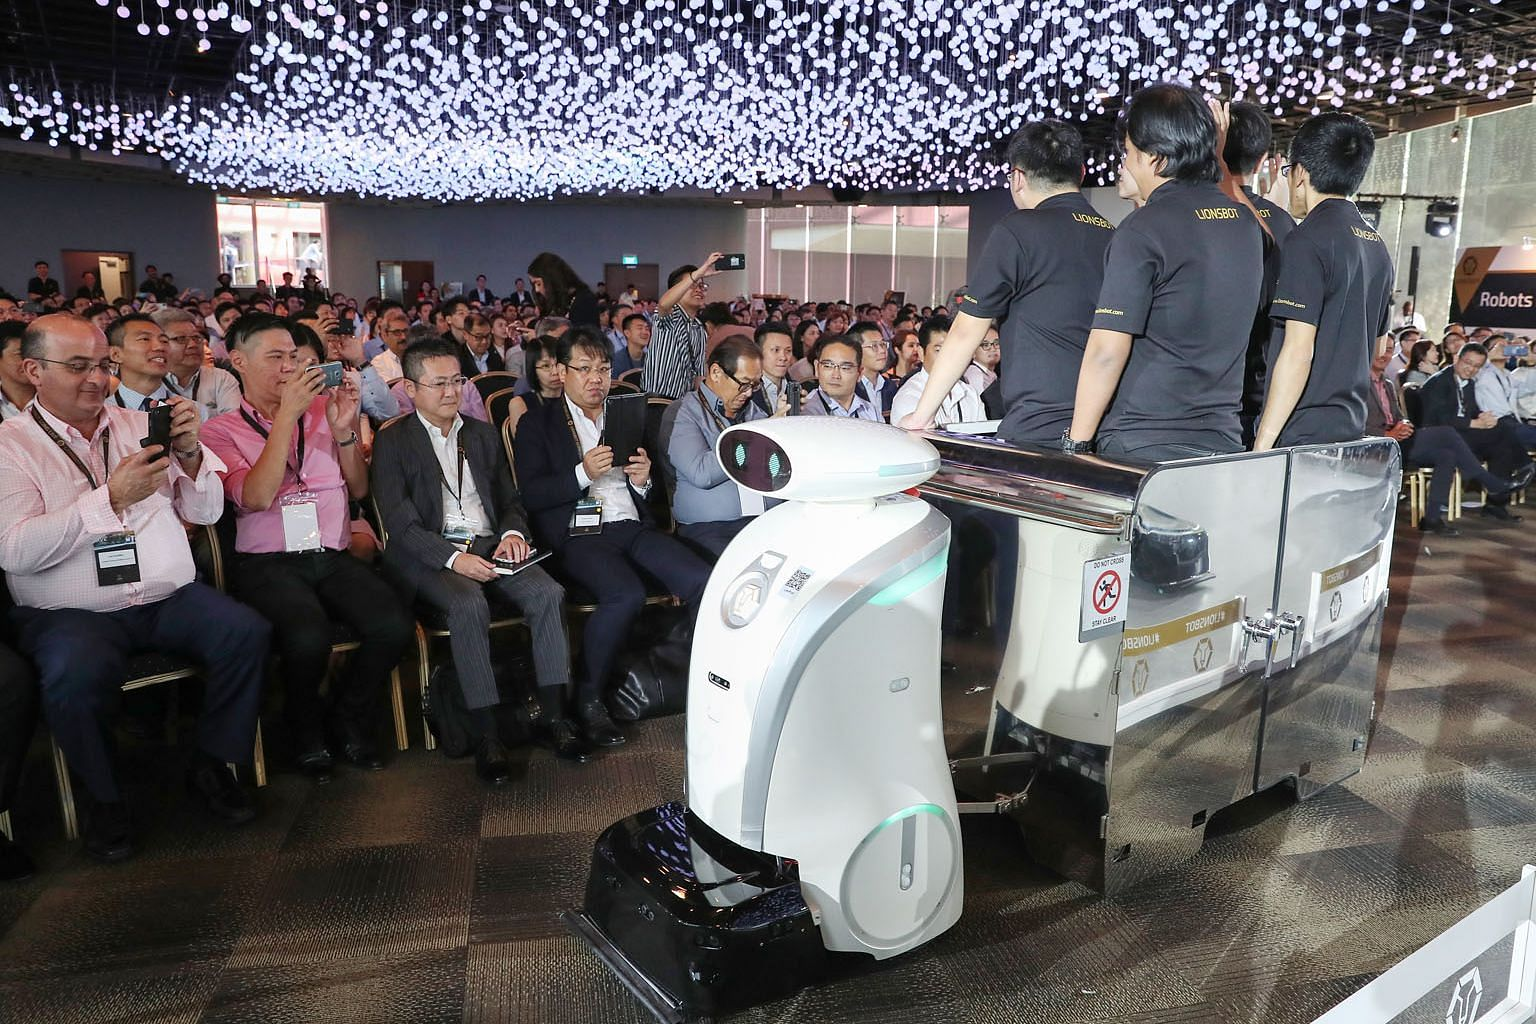 LeoPull, a robot that can transport up to 450kg of cleaning equipment, on show at the launch event yesterday. Local firm LionsBot International has developed 13 different robot models that can scrub, mop, vacuum, sweep, shine and even transport clean